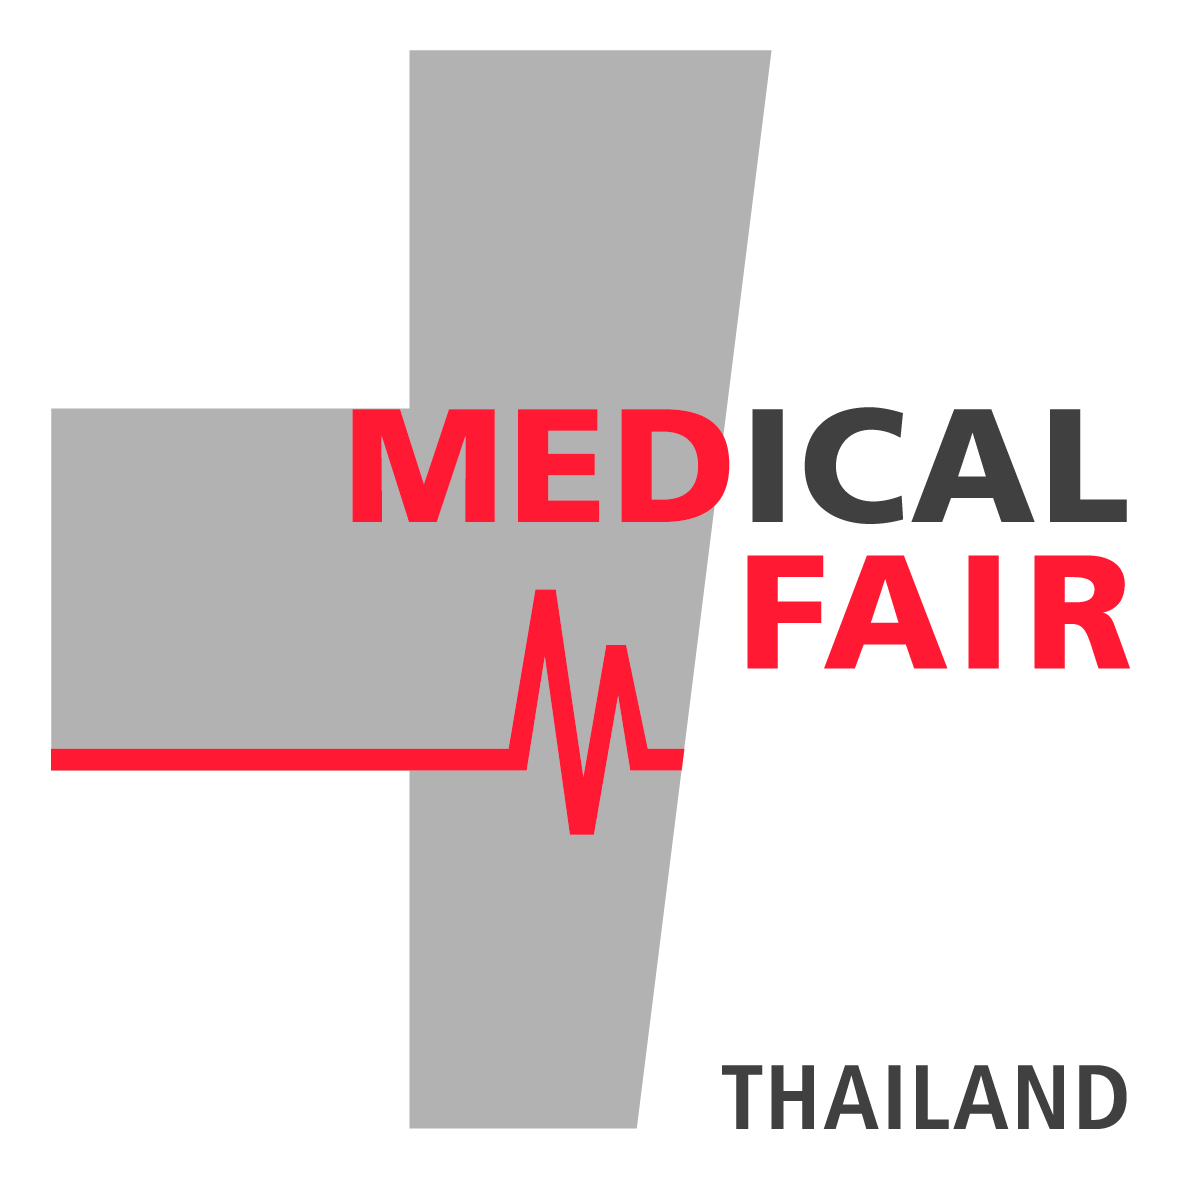 MEDICAL FAIR THAILAND 2017 – Discover the date!